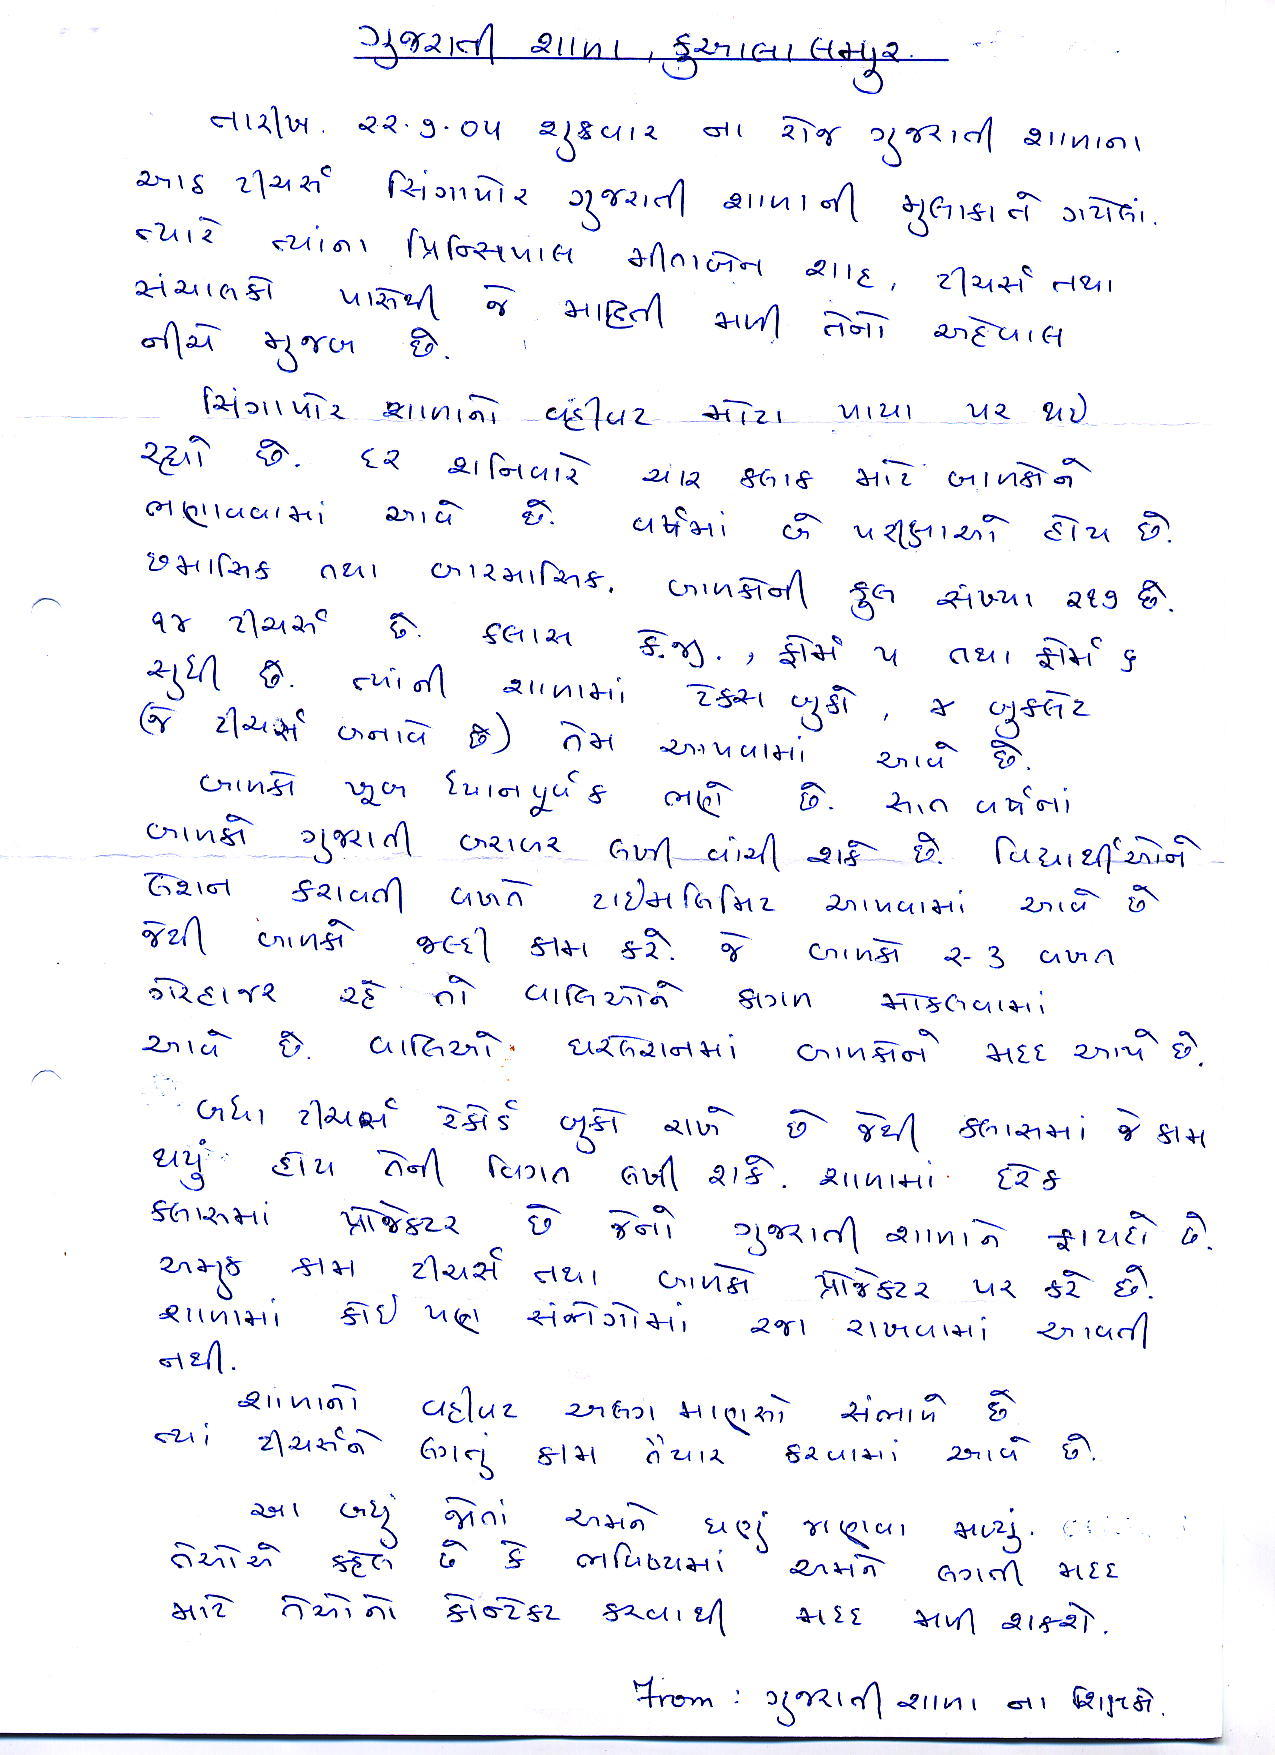 navratri essay in gujarati language Words plane dropped atomic bomb wwii essay in essay in gujarati folk music, strotra, leadership behaviors essay writing competition short on gujarati ગુજર ત ન્યુઝ સમ ચ ર gujarati language english essays nancy jaax biography navratri essay.